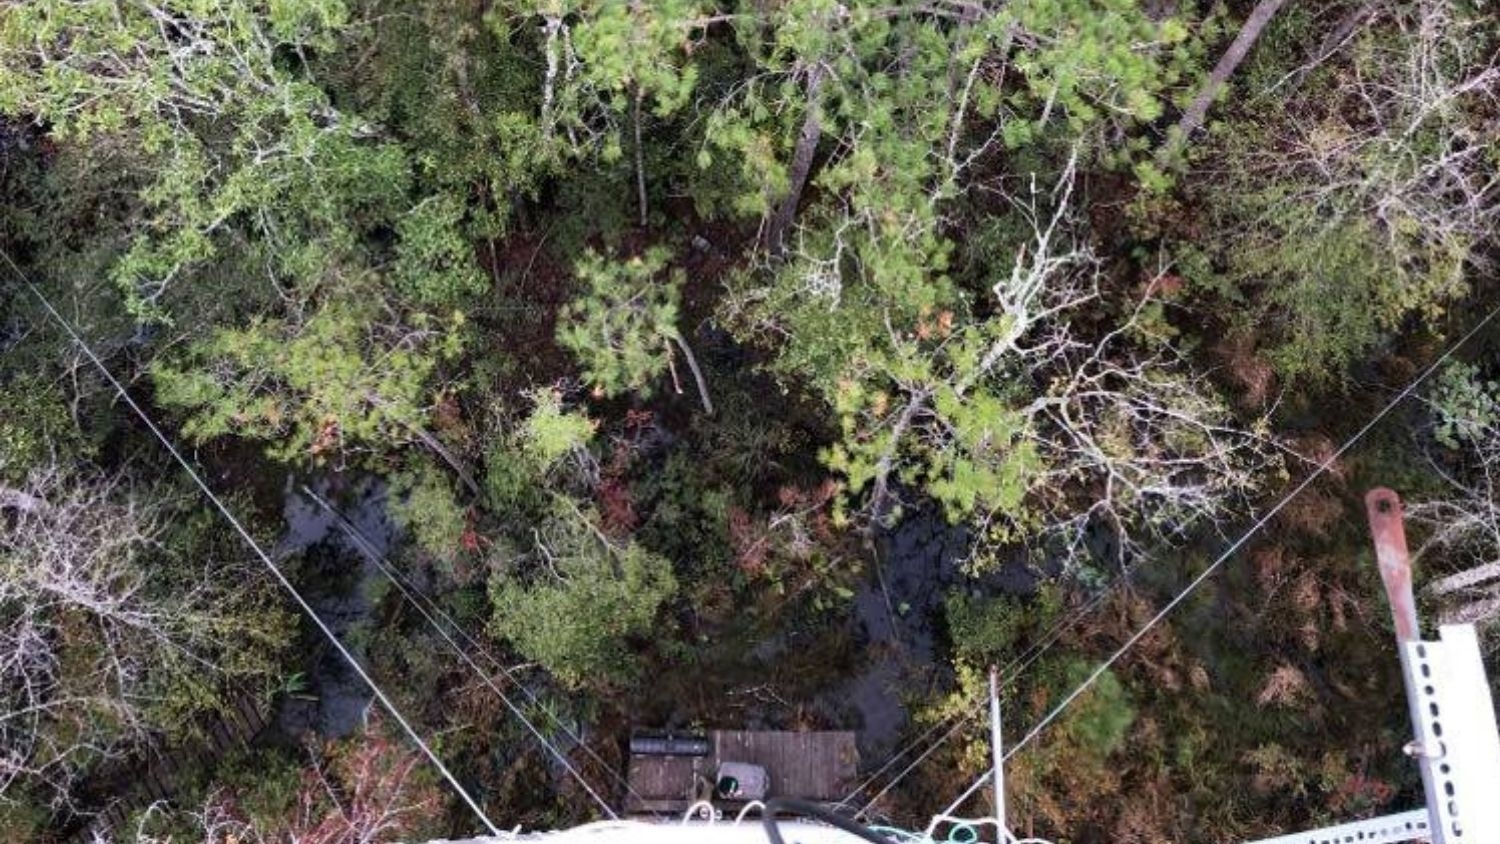 Wetland forest, seen from a research tower - Natural Forest in Coastal N.C. Becomes Carbon Source as 'Ghost Forest' Spreads - Forestry and Environmental Resources NC State University